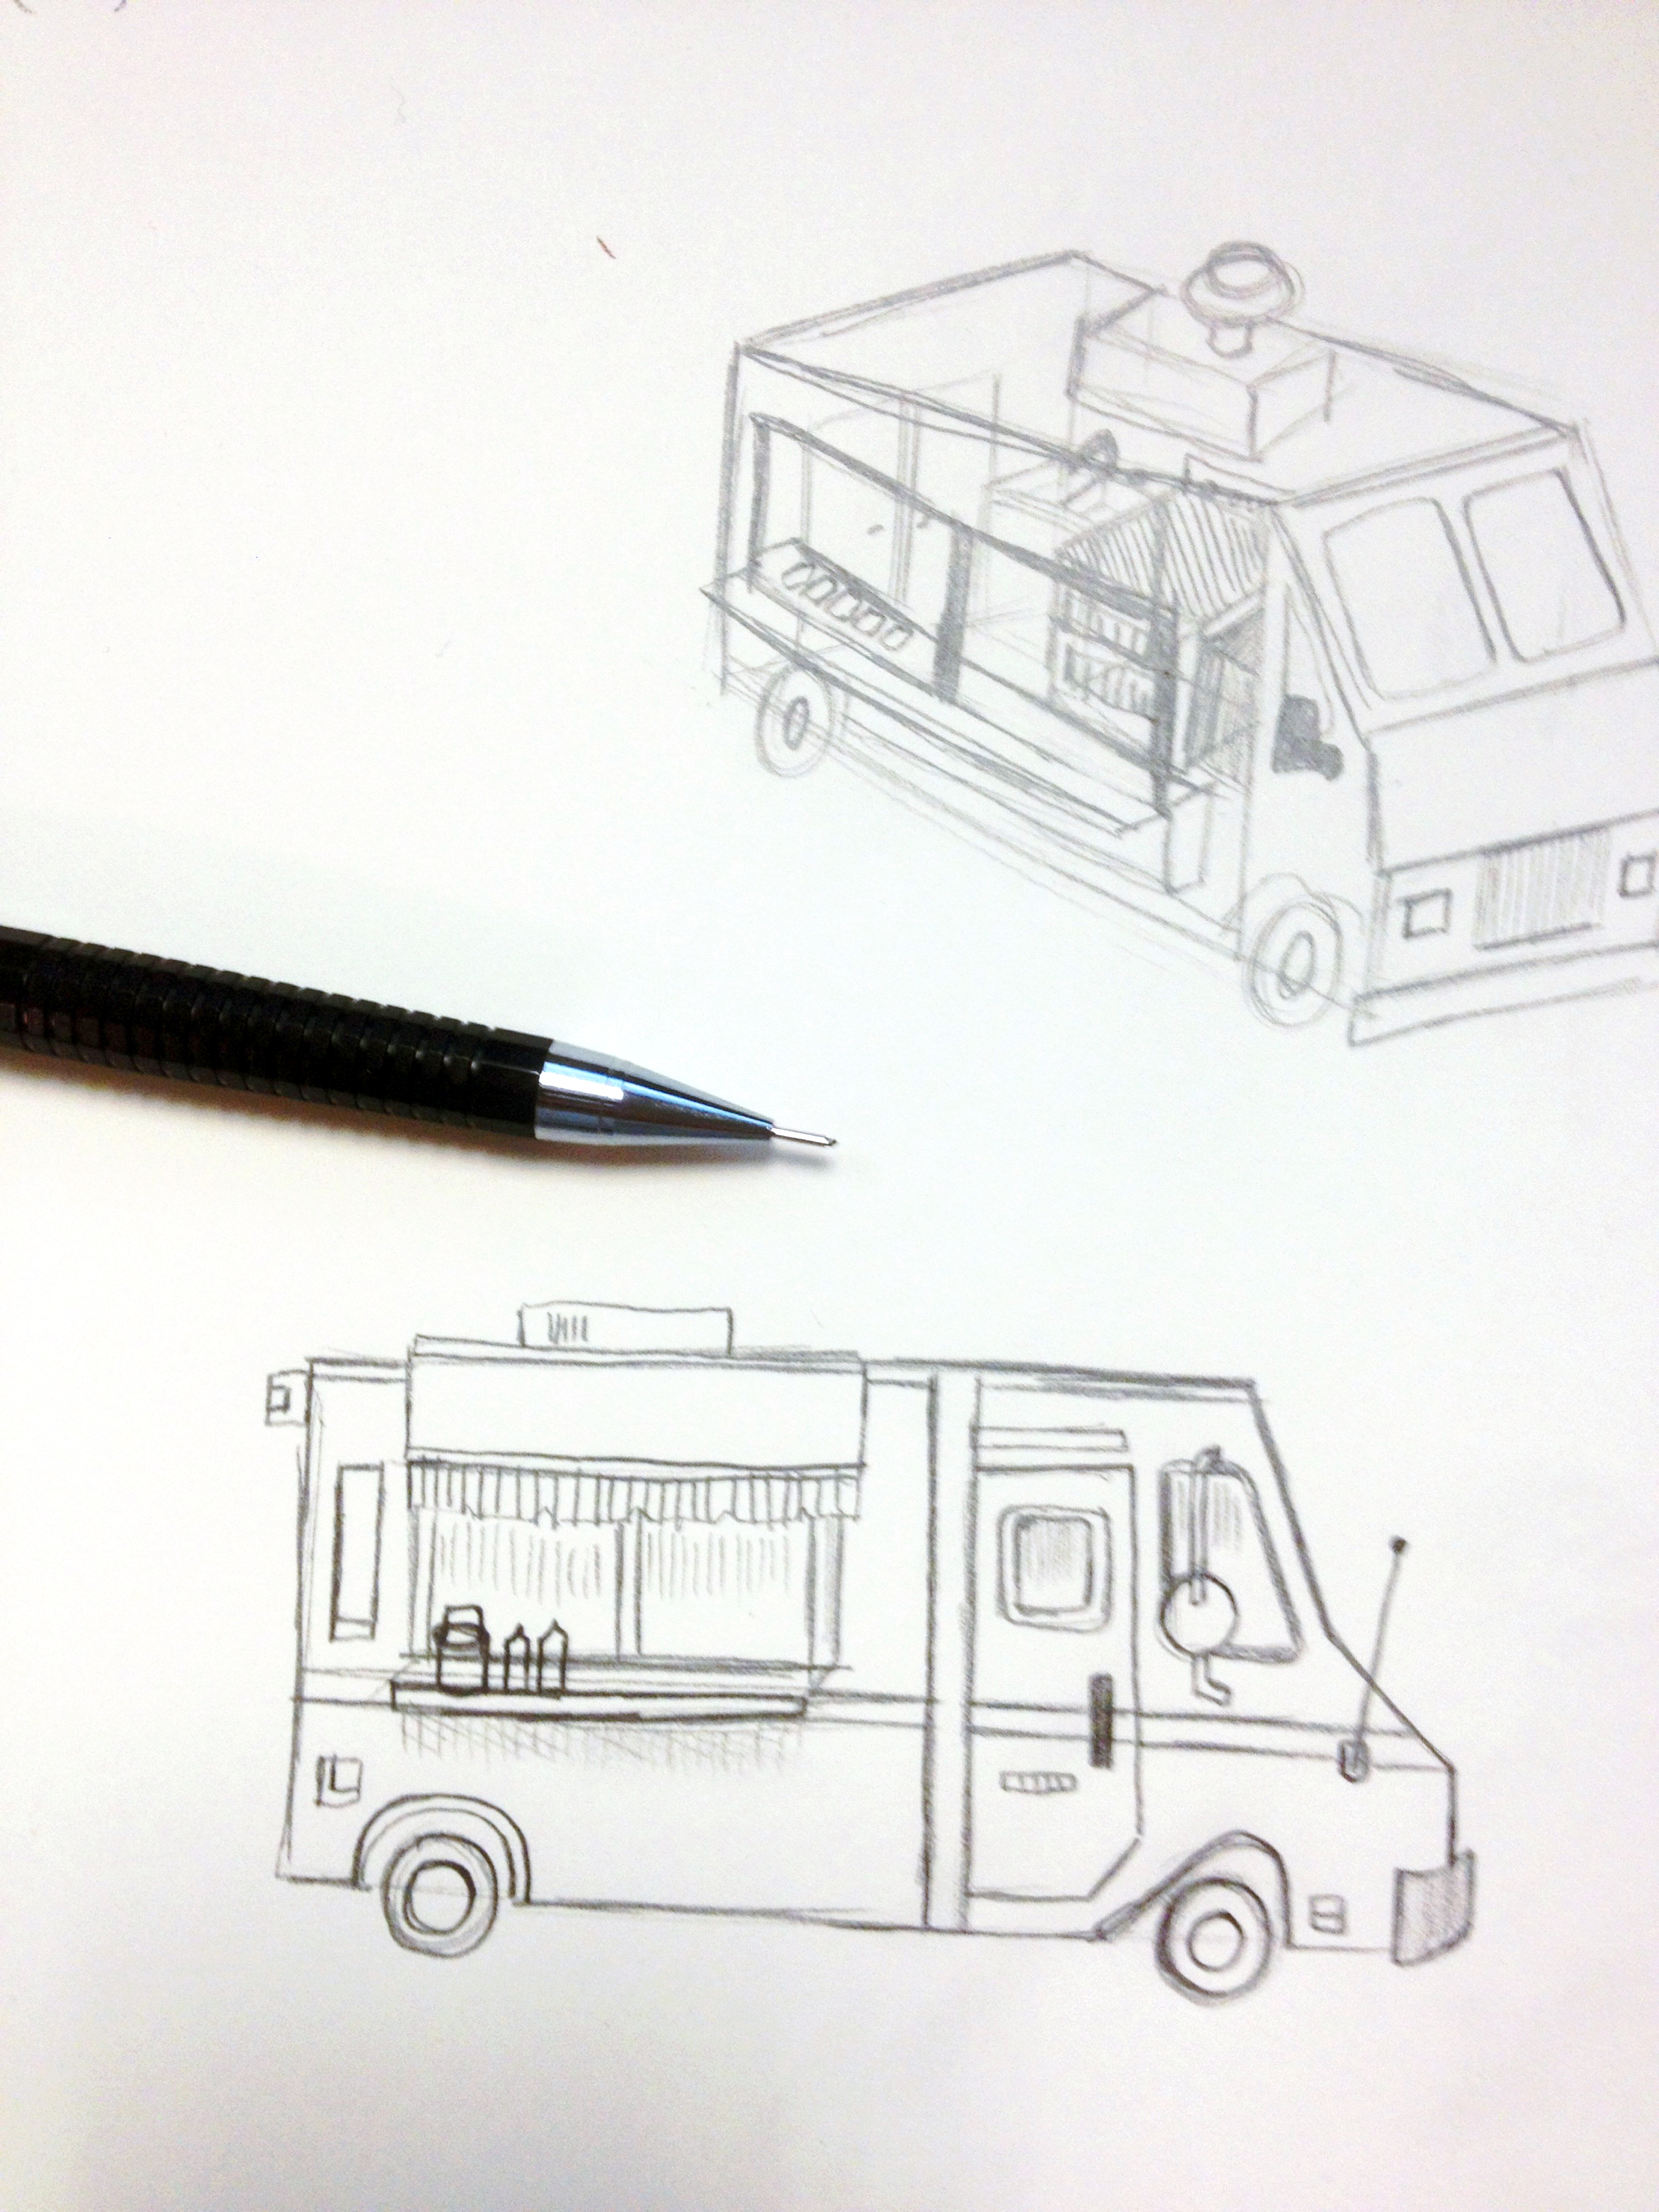 Preliminary sketches for food trucker opener